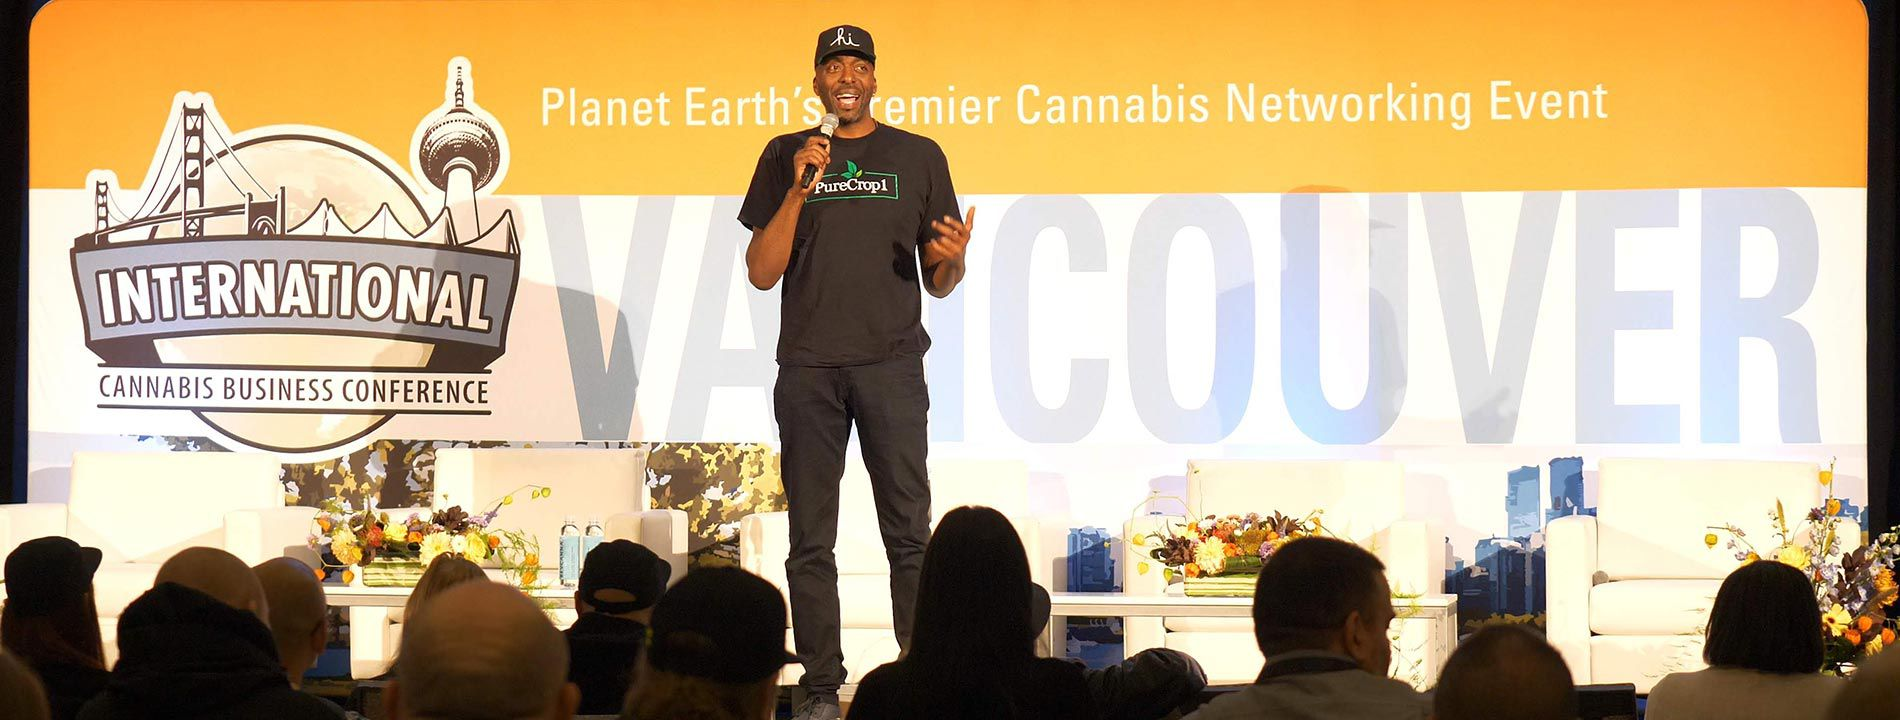 Vancouver BC Canada cannabis conference speaker